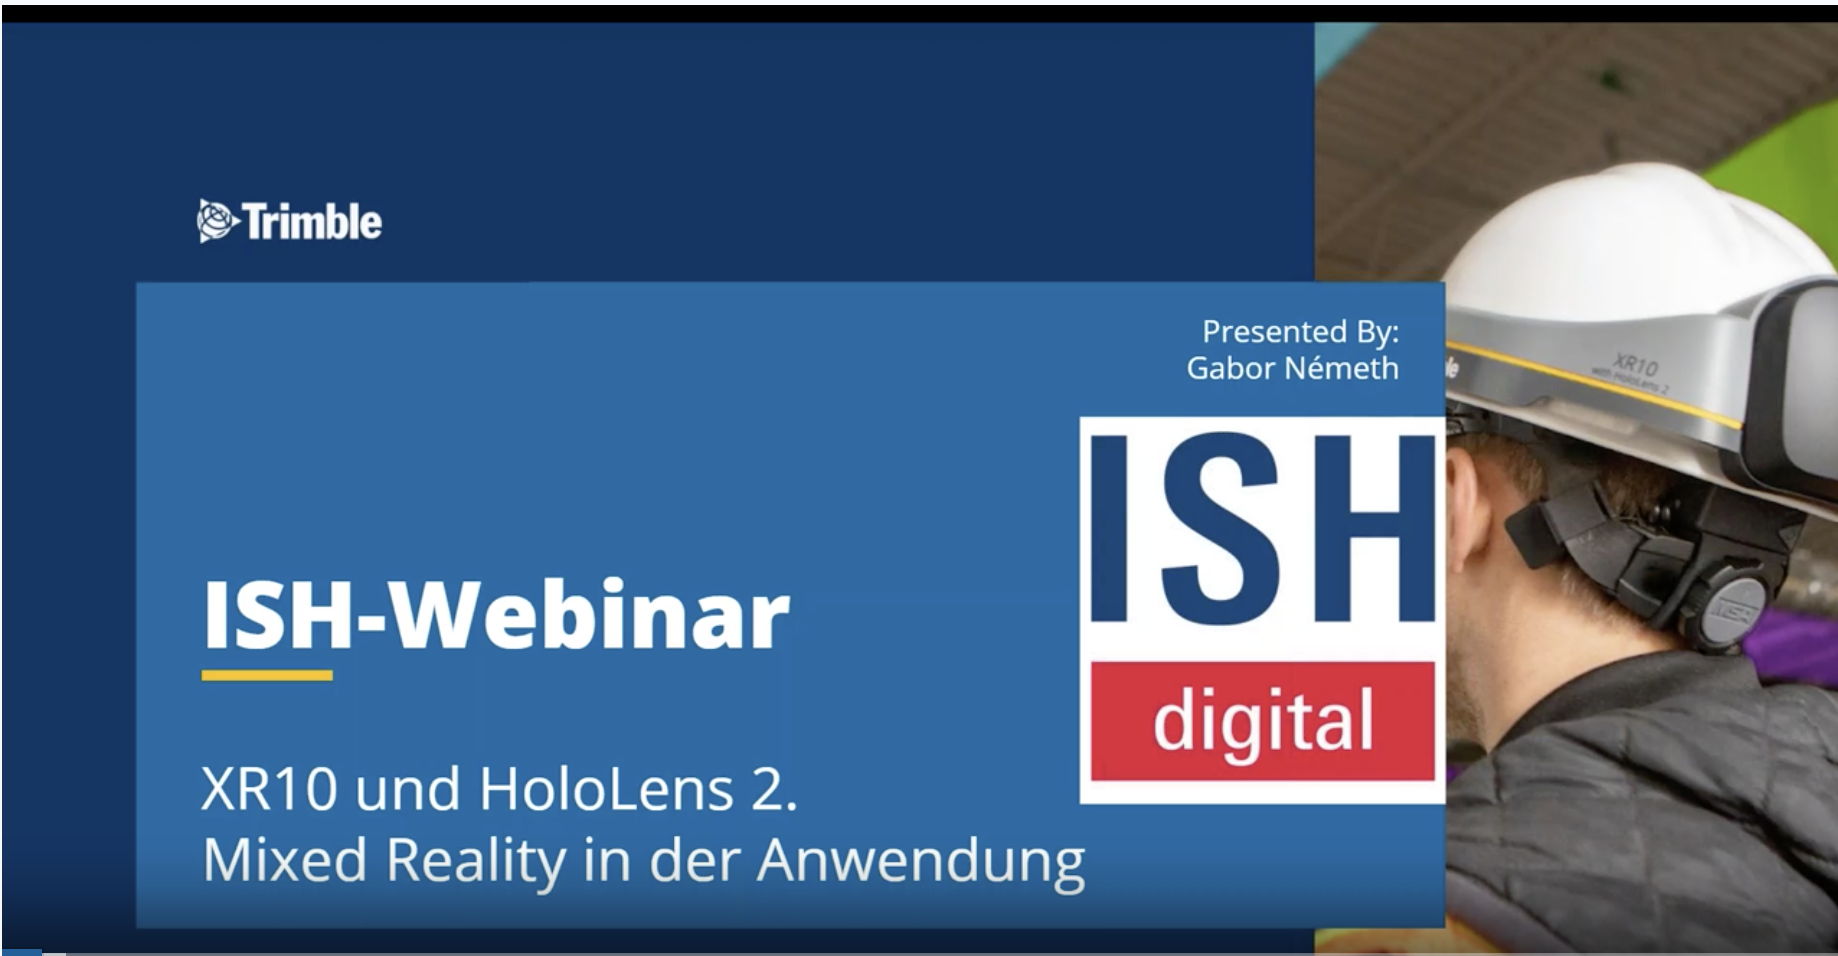 [ON DEMAND ISH-Webinar] XR10 und Hololens 2, Mixed Reality in der Anwendung